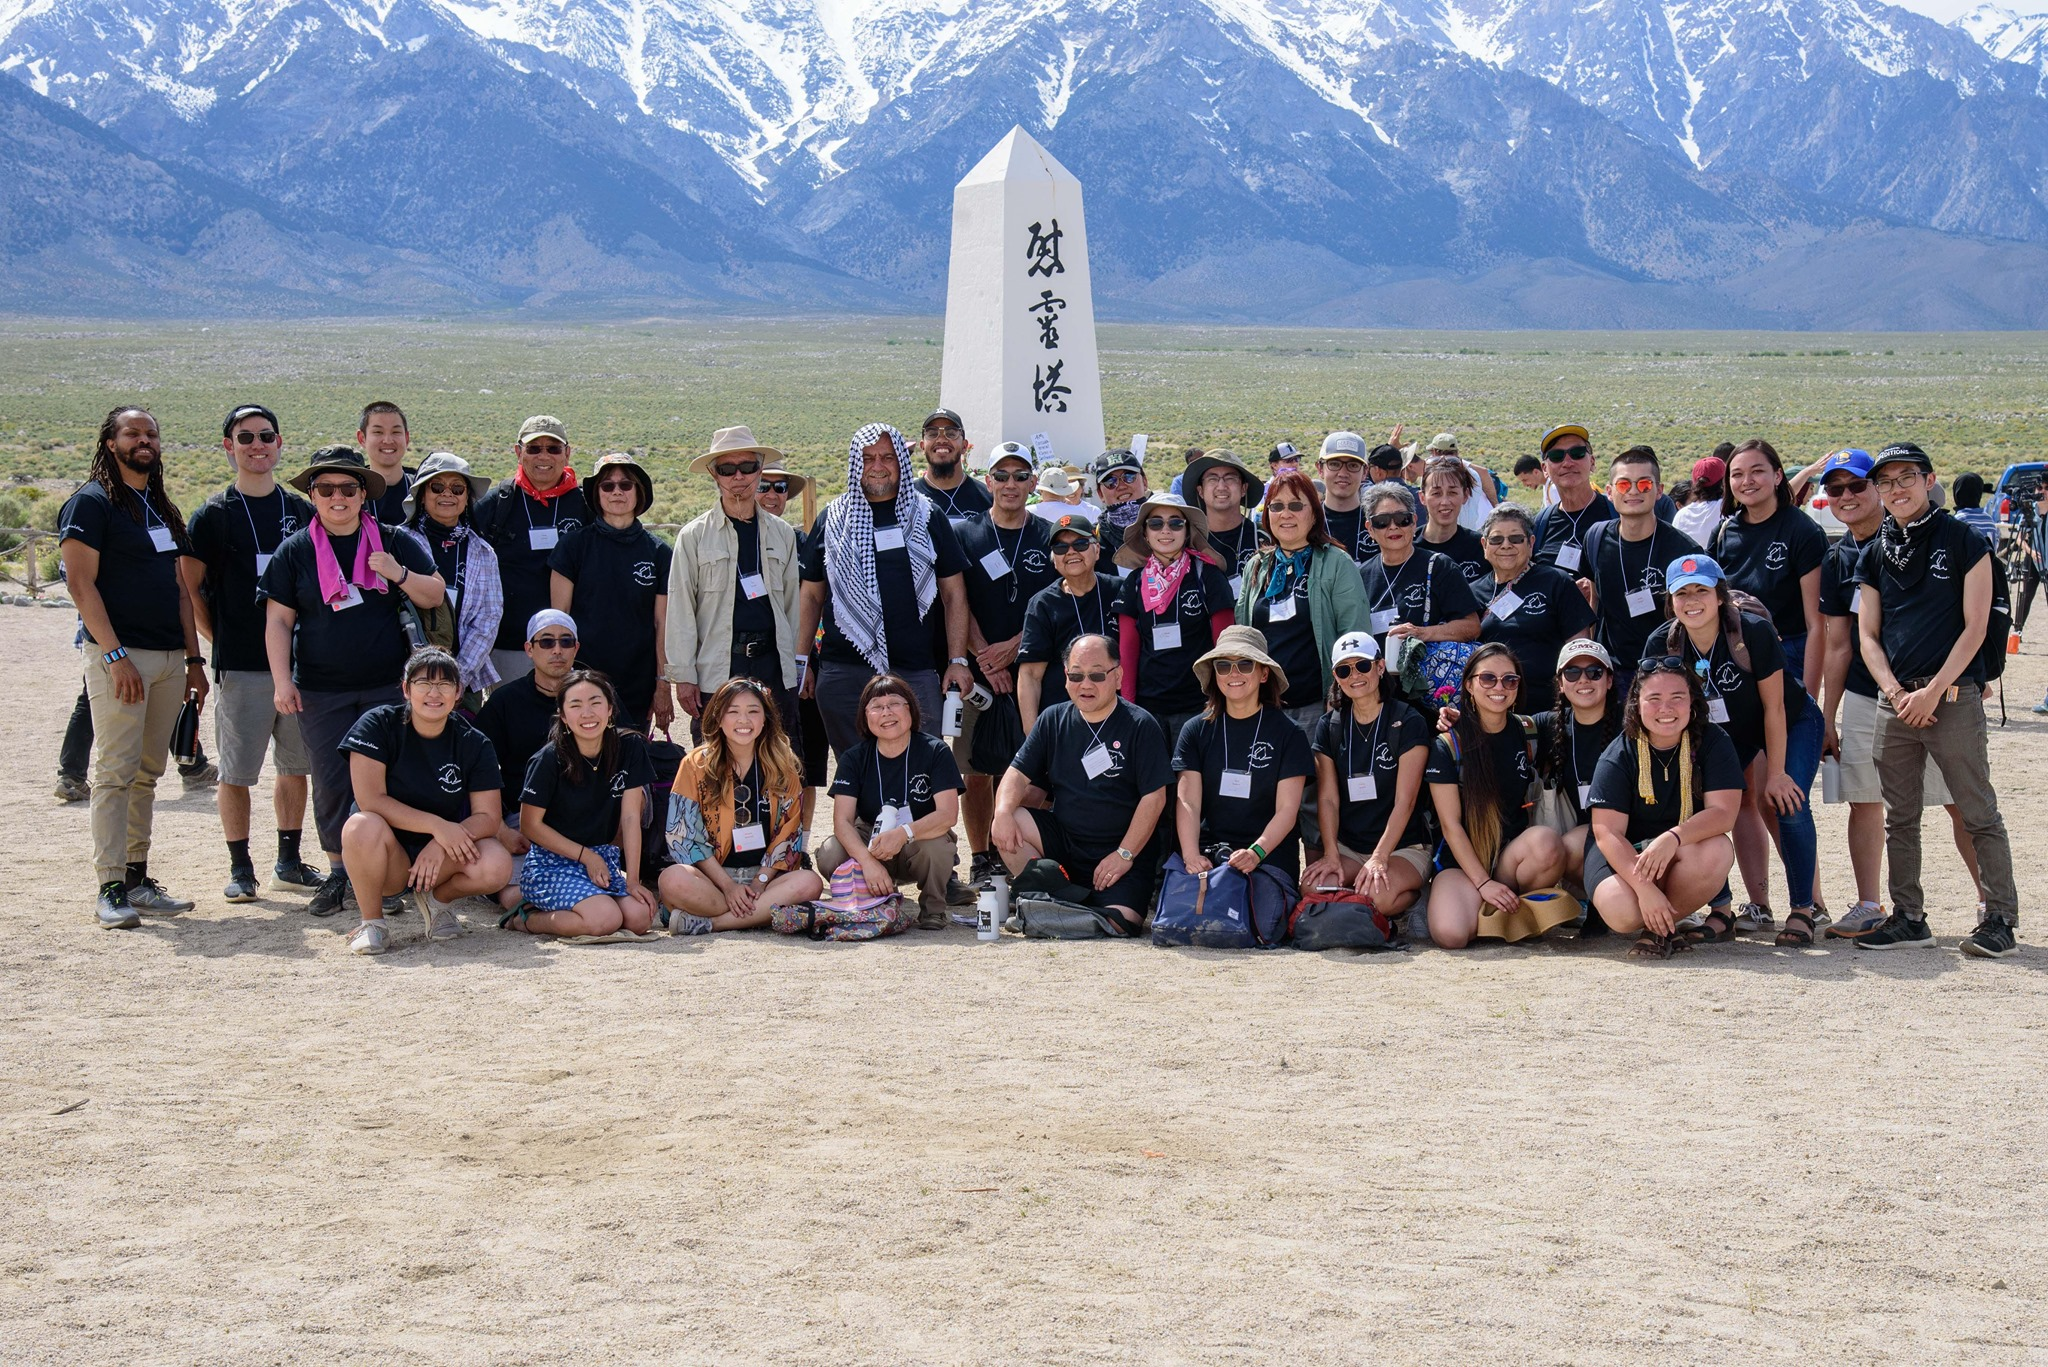 2019 San Jose JACL Manzanar Pilgrims. Photo by Joshua Kaizuka